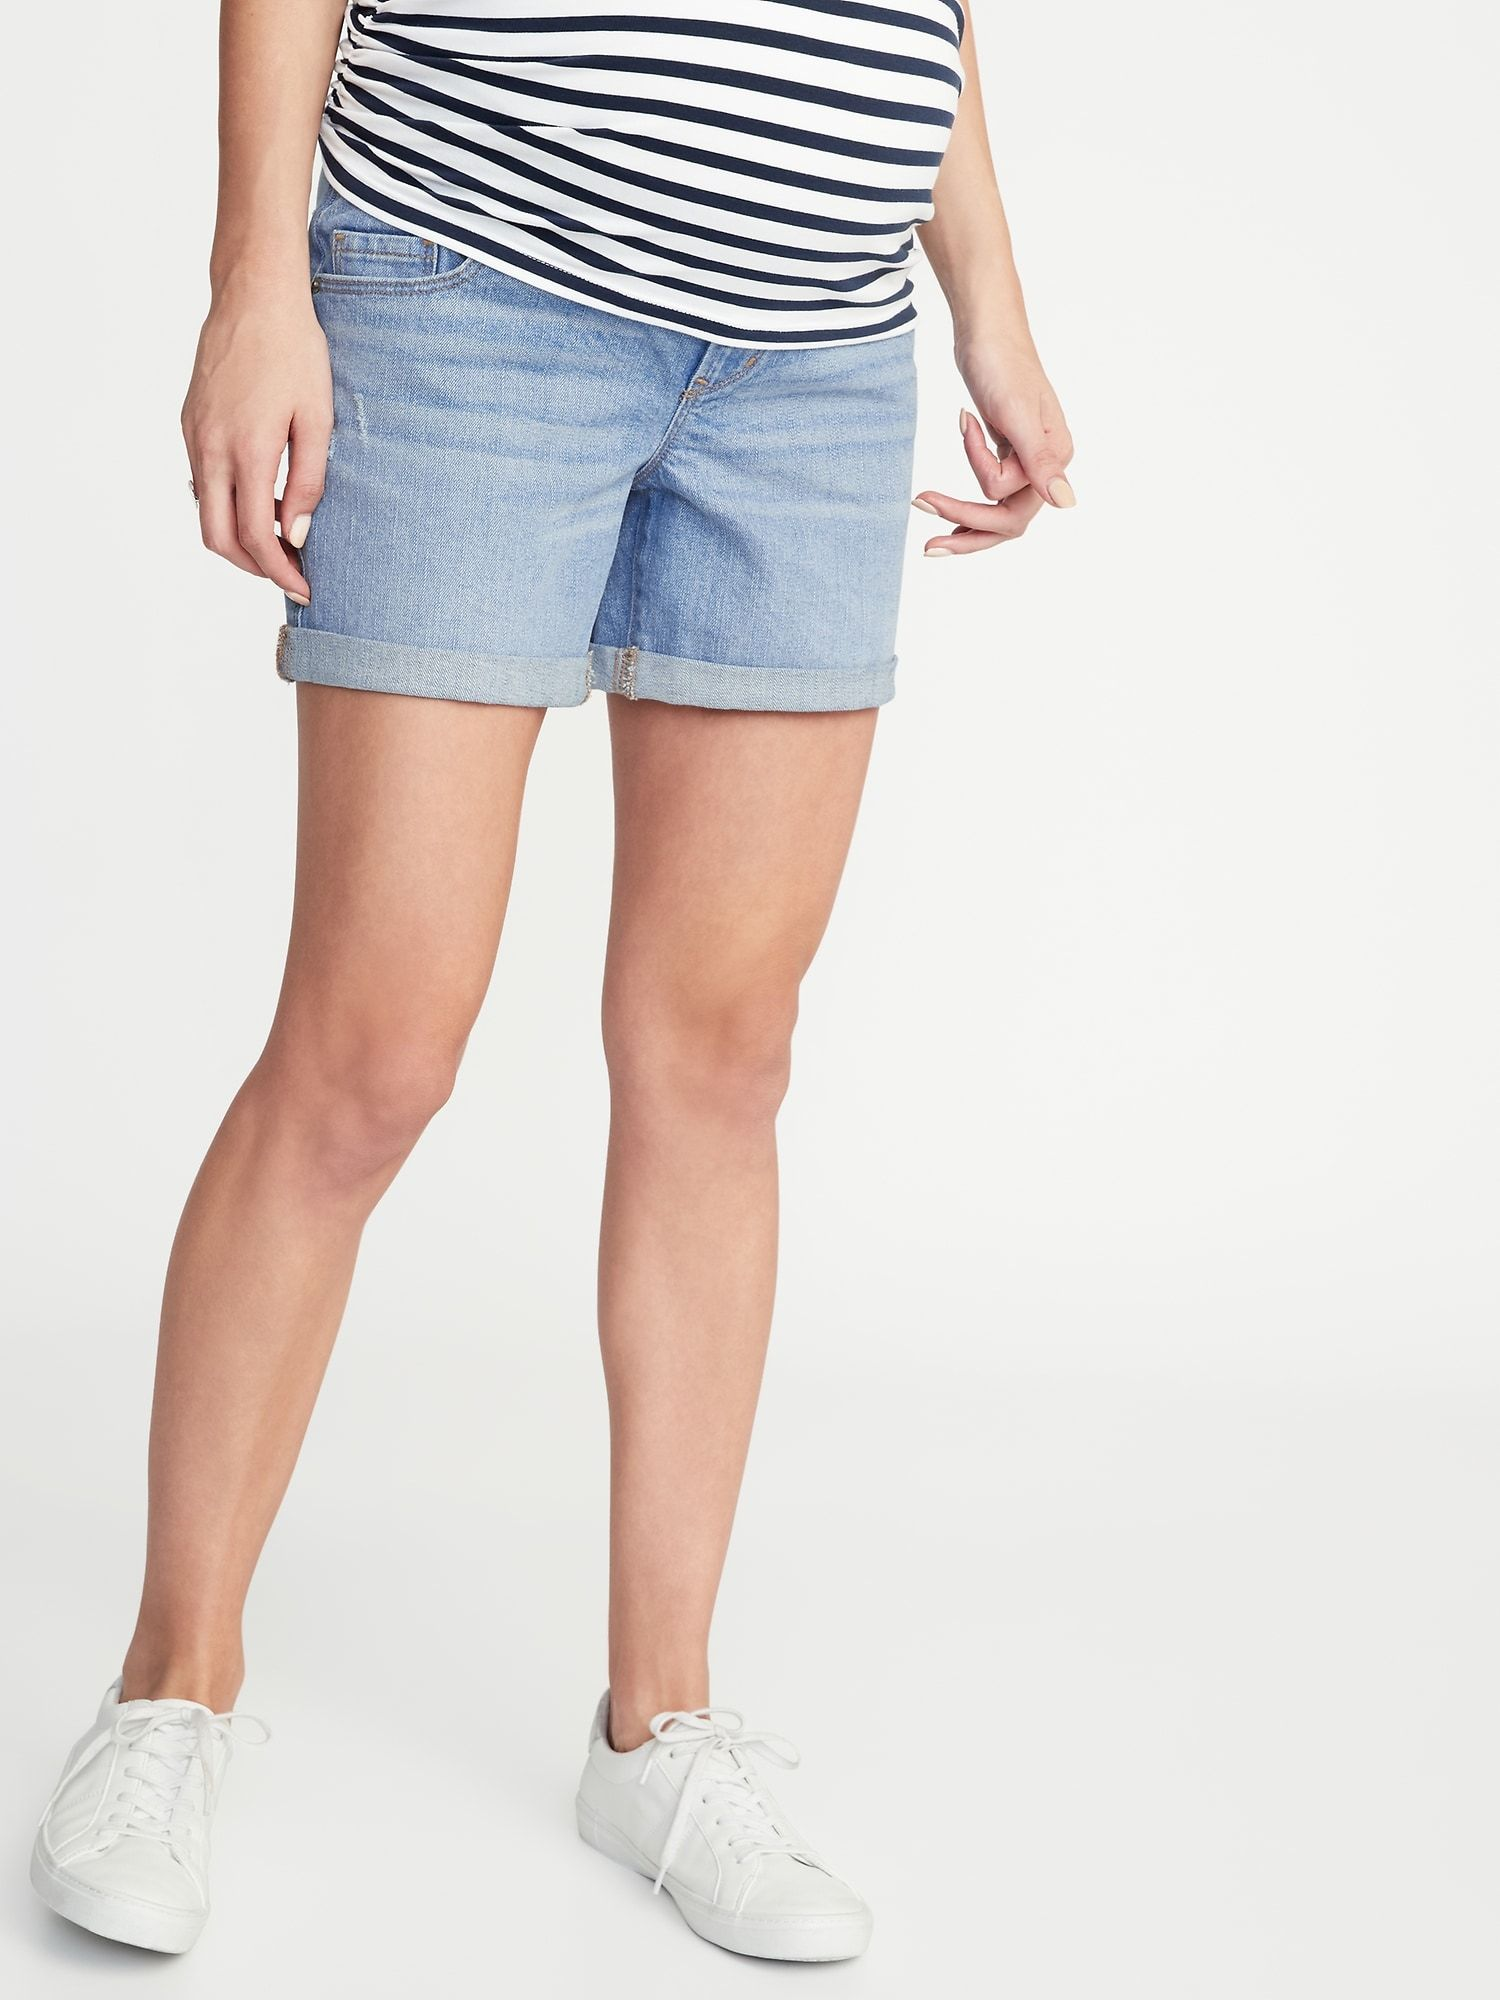 dfb7bee02f Maternity Front-Low Panel Distressed Boyfriend Denim Shorts - 5-inch inseam  | Old Navy